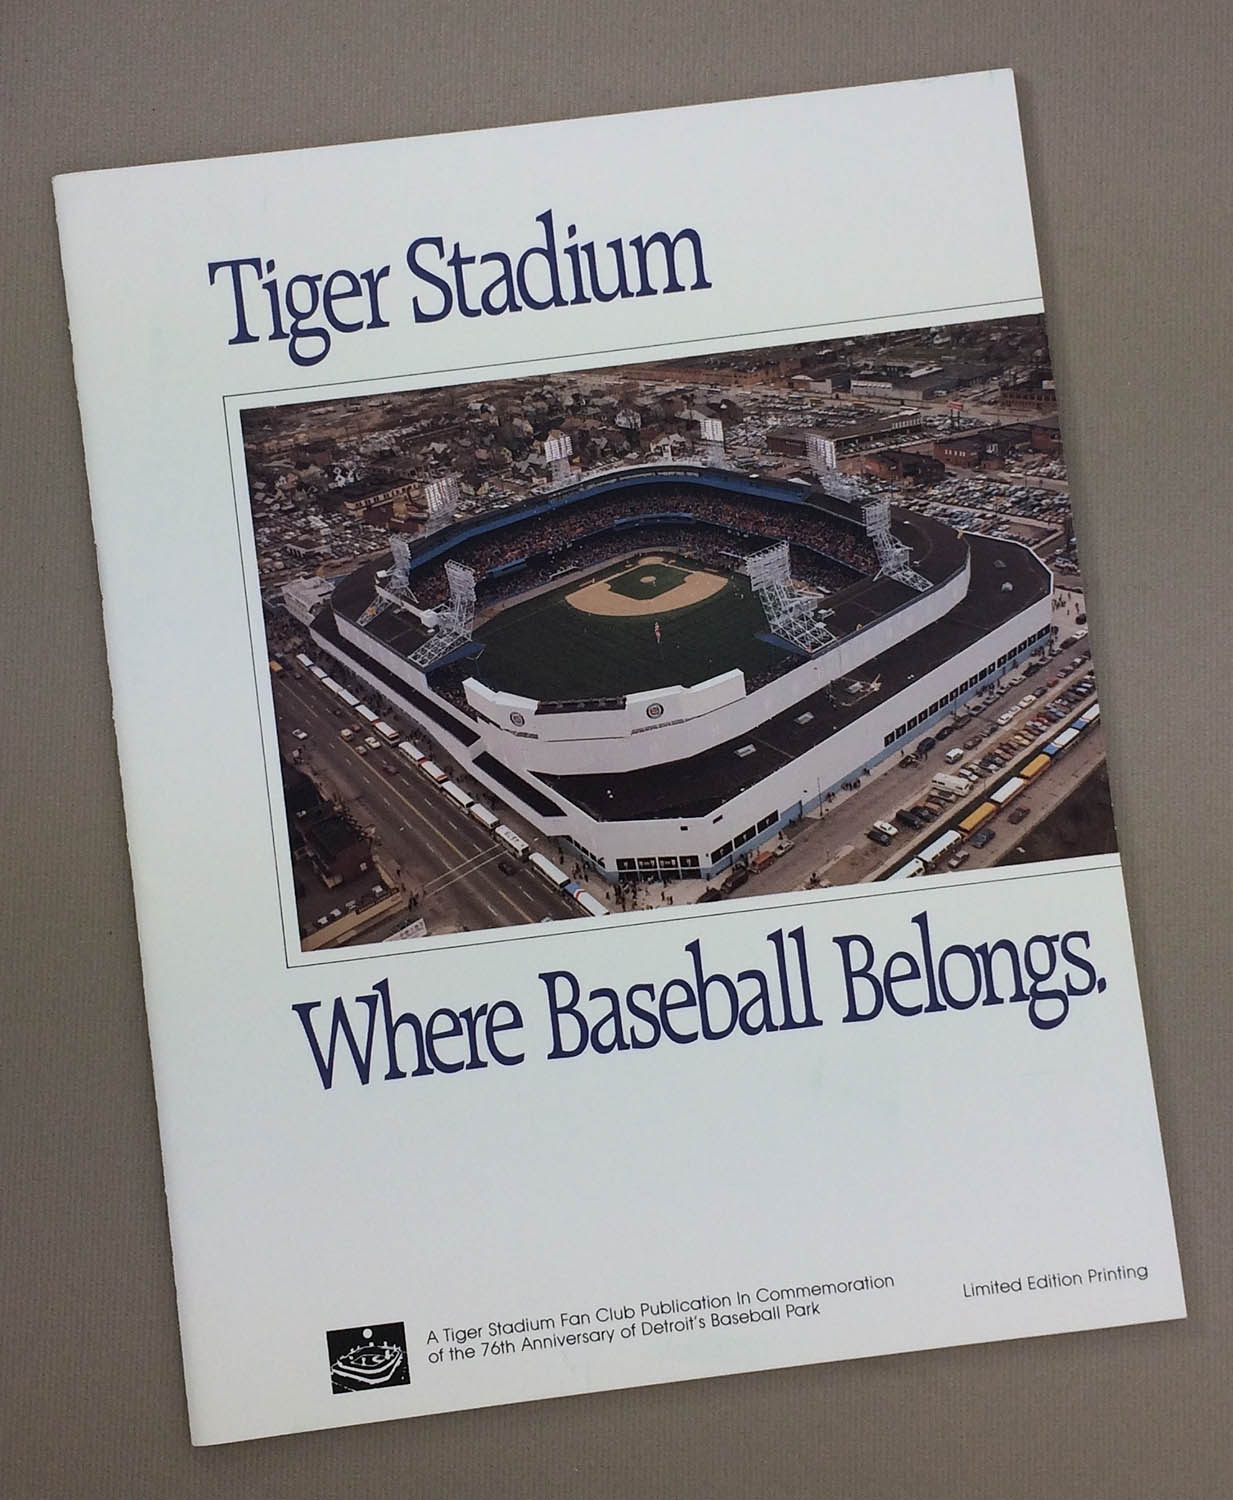 Tiger Stadium Commemorative Guide